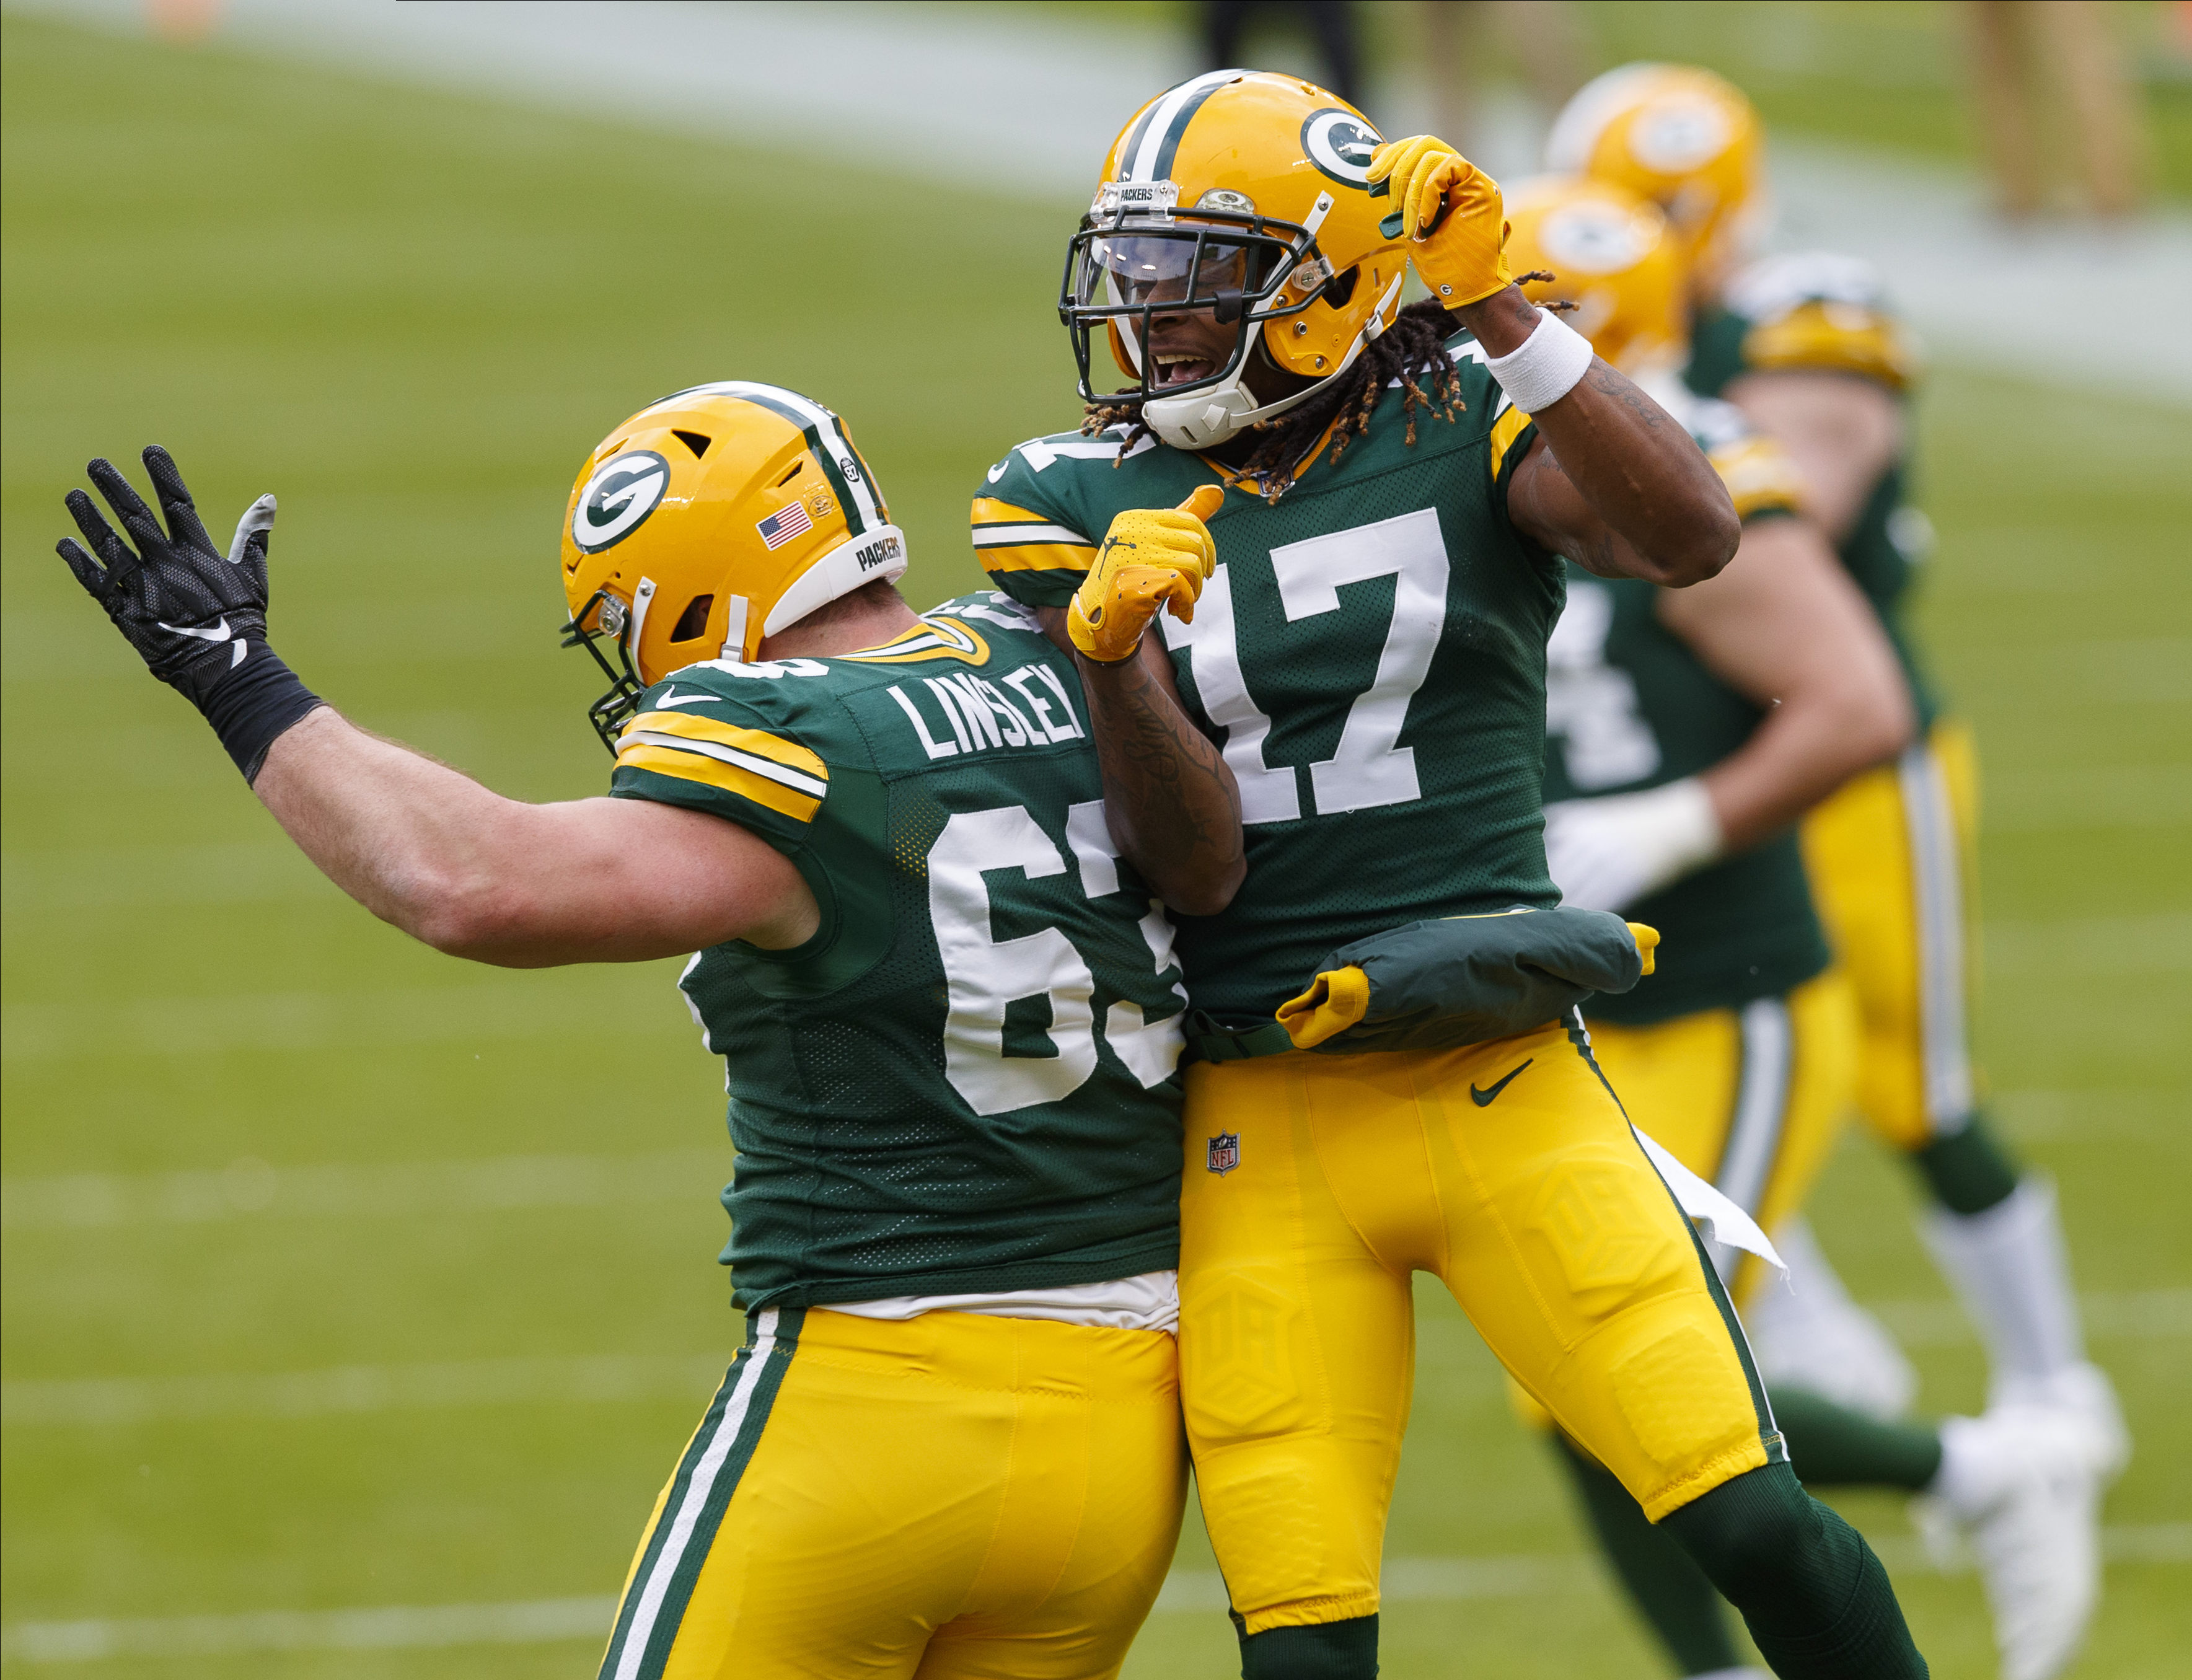 Five Reasons the Packers Should Sign Davante Adams to an Extension ASAP